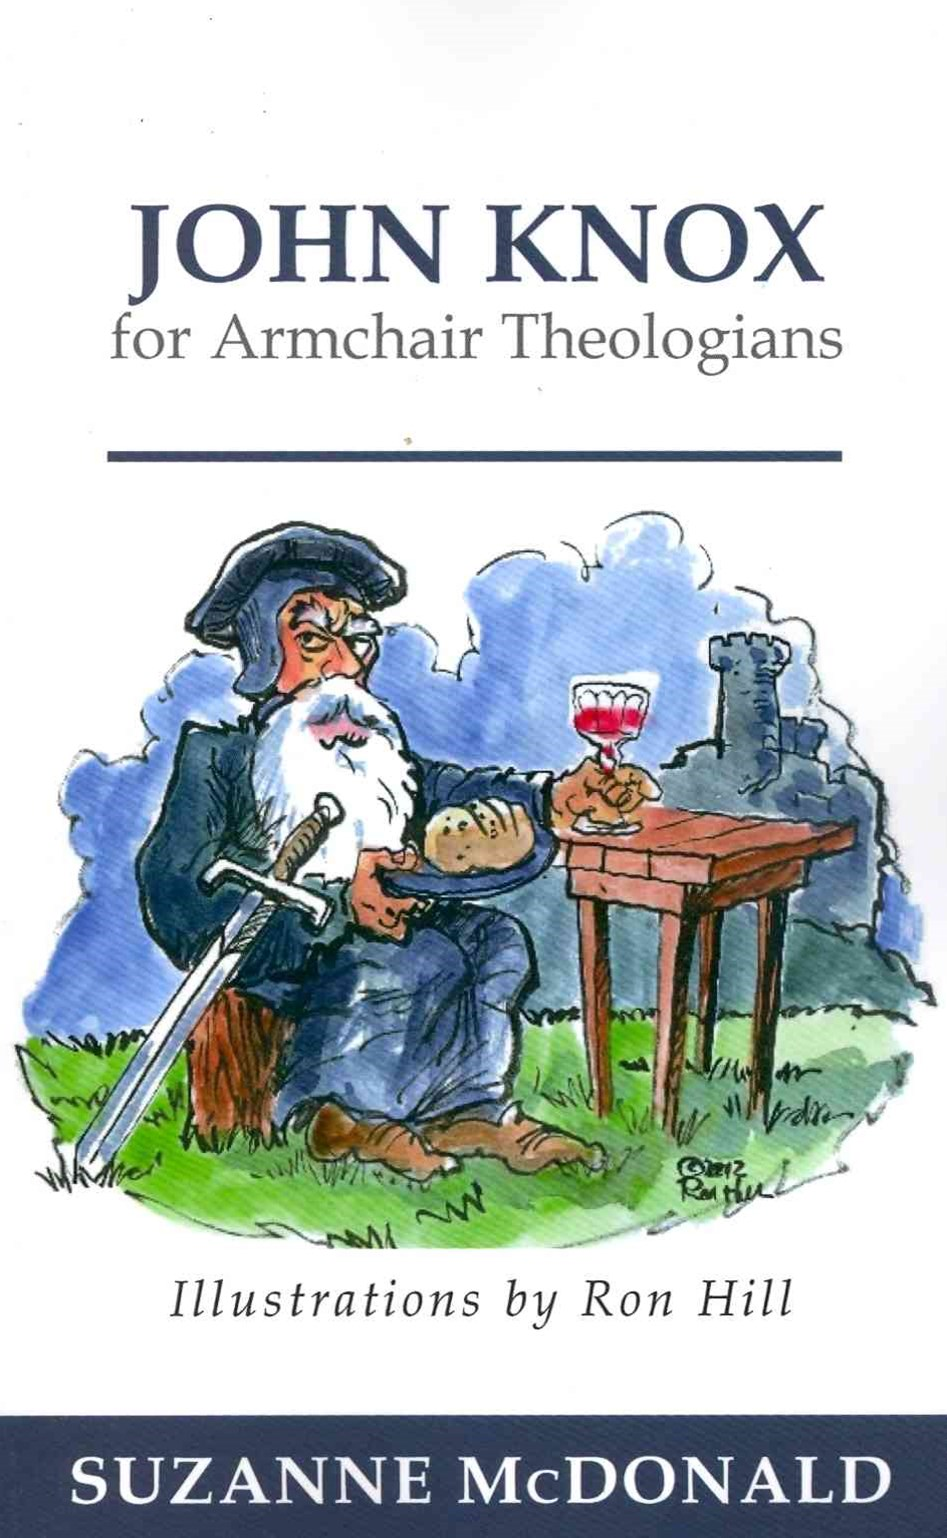 John Knox for Armchair Theologians